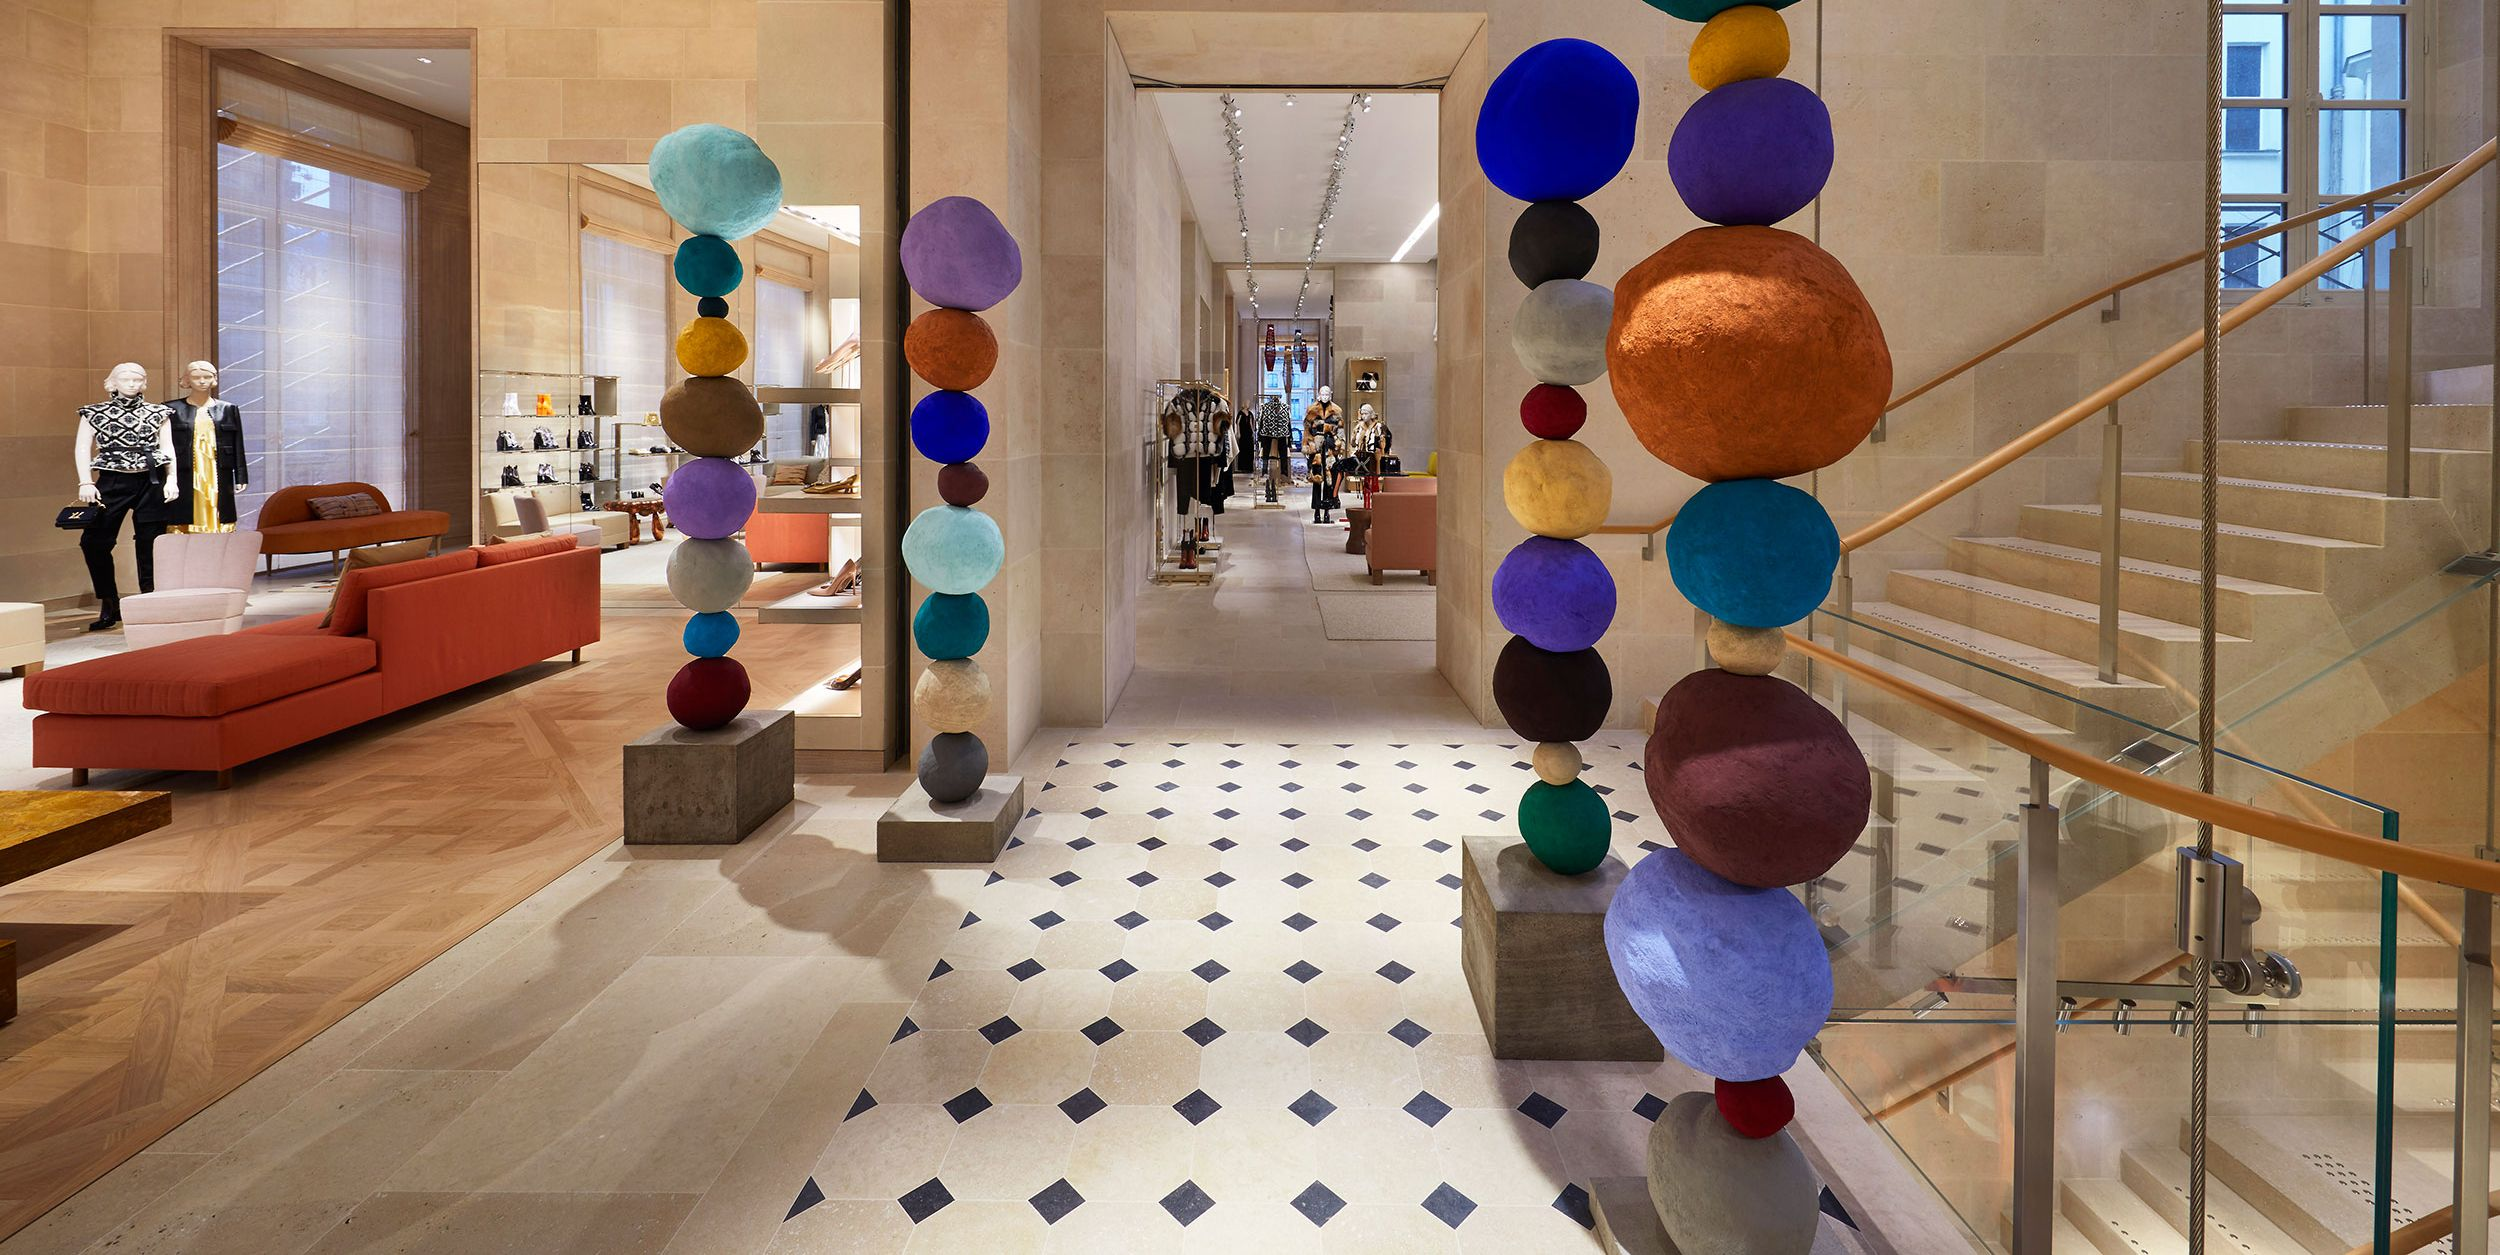 Louis Vuitton's New Paris Store Was Designed by the Architect of Versaille